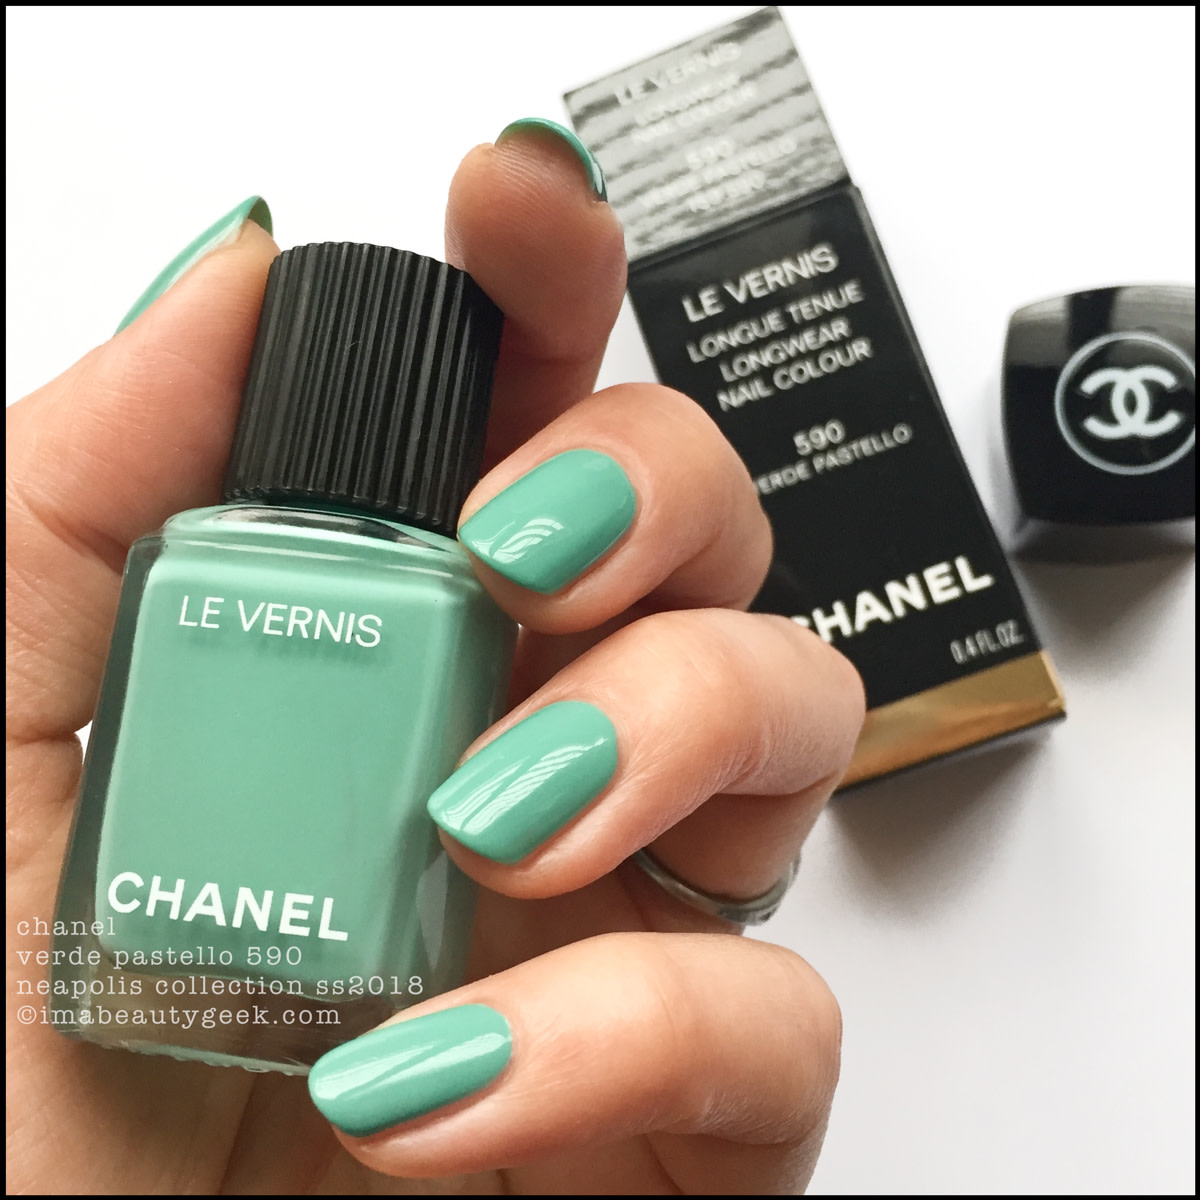 Chanel Verde Pastello 590 Le Vernis SS 2018 Neapolis Collection